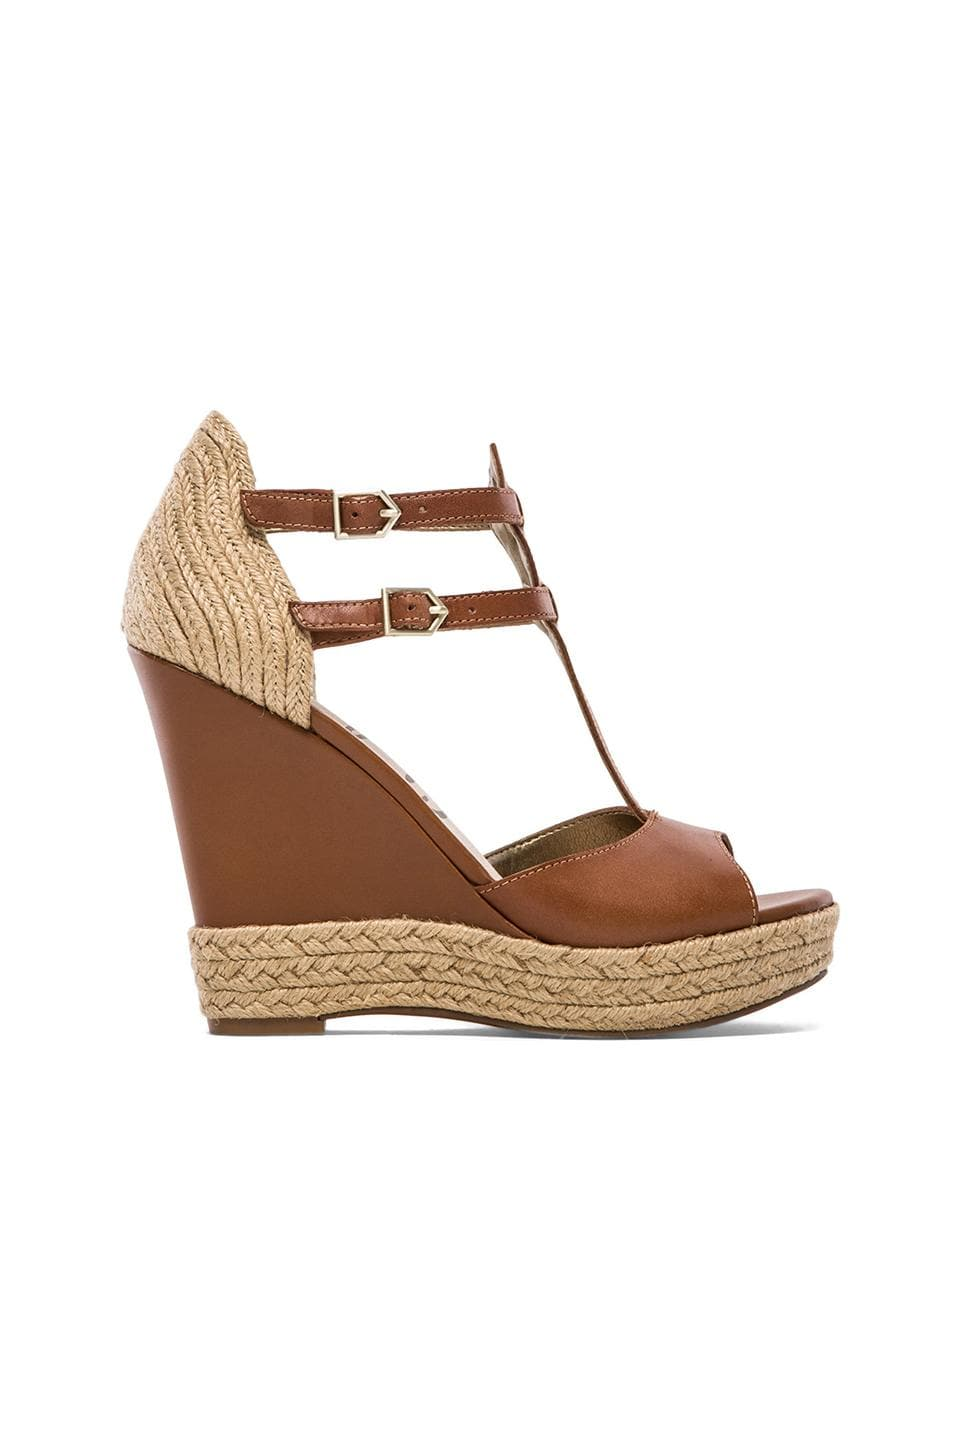 Sam Edelman Katarina Wedge in Saddle